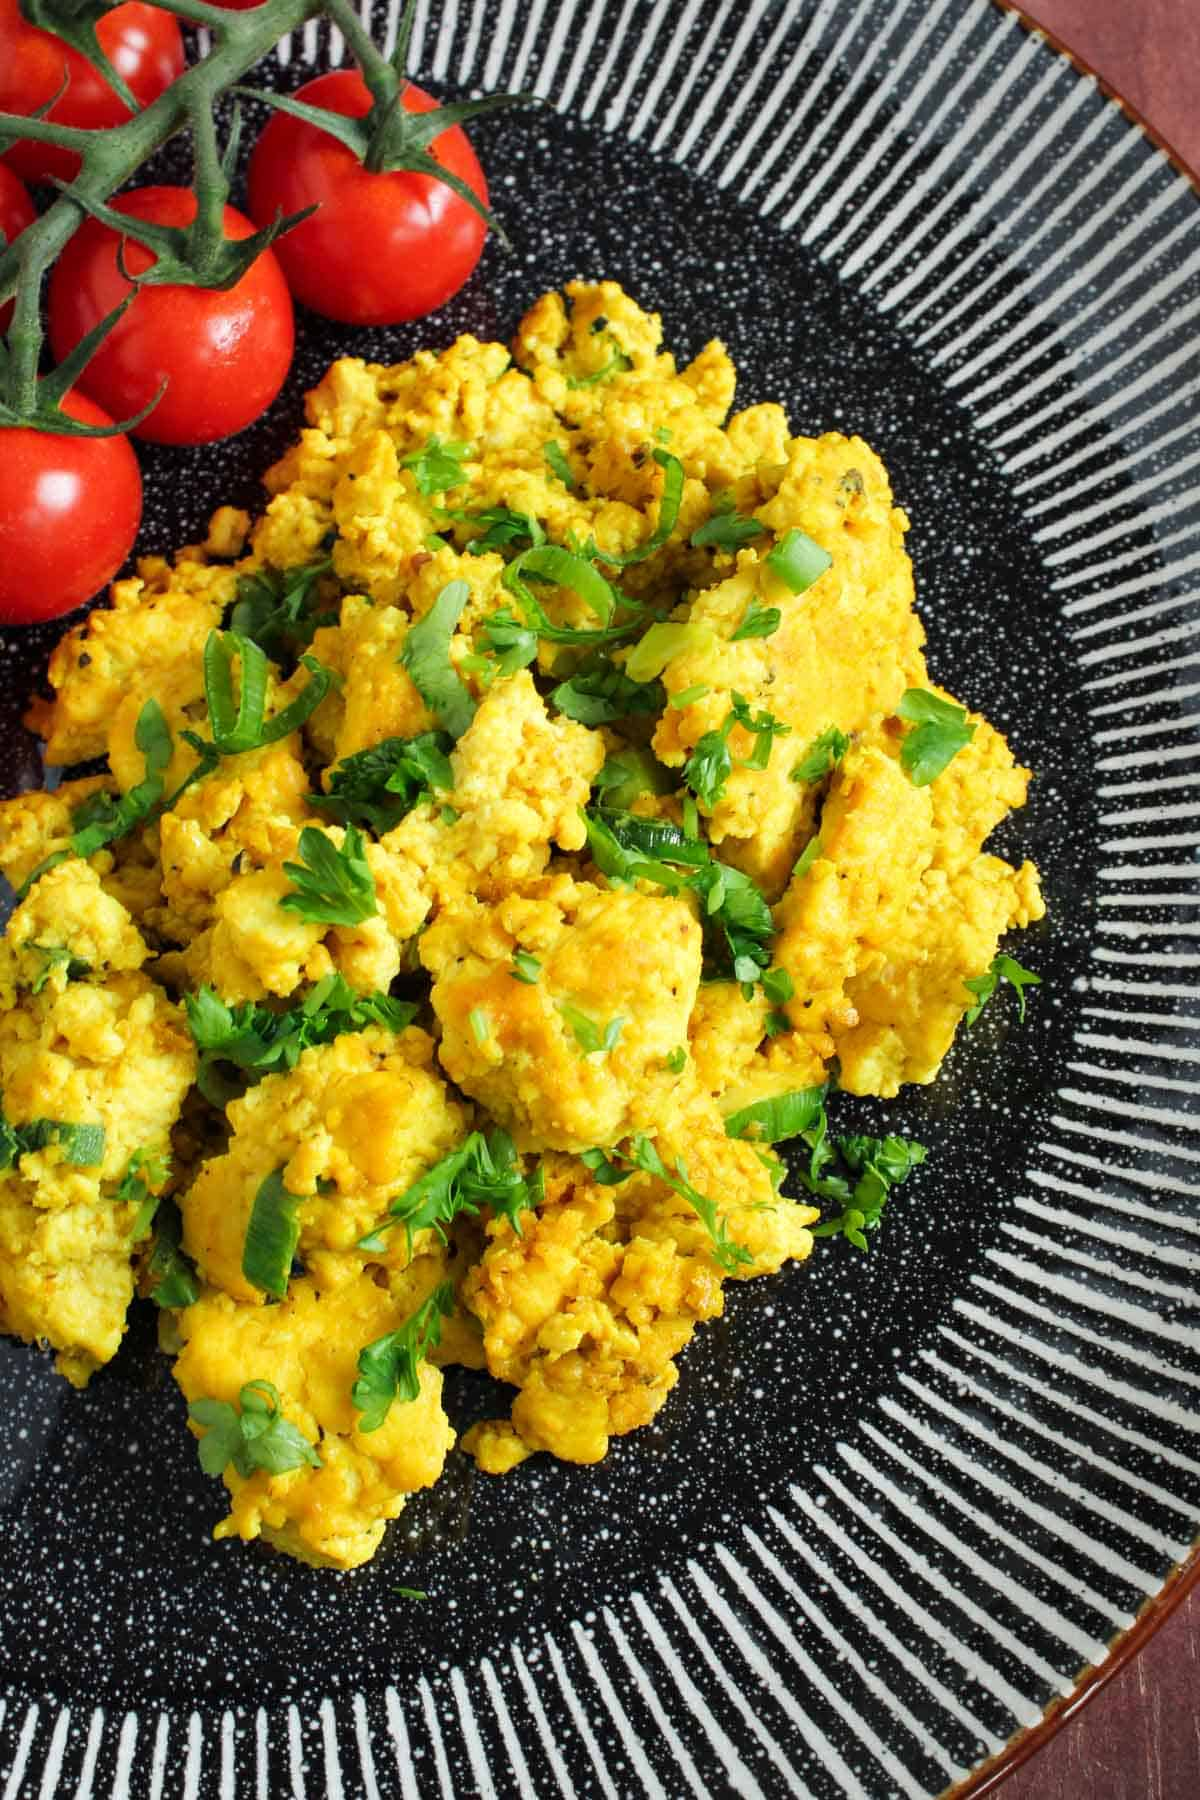 Vegan Scrambled Egg on Plate with Tomatoes